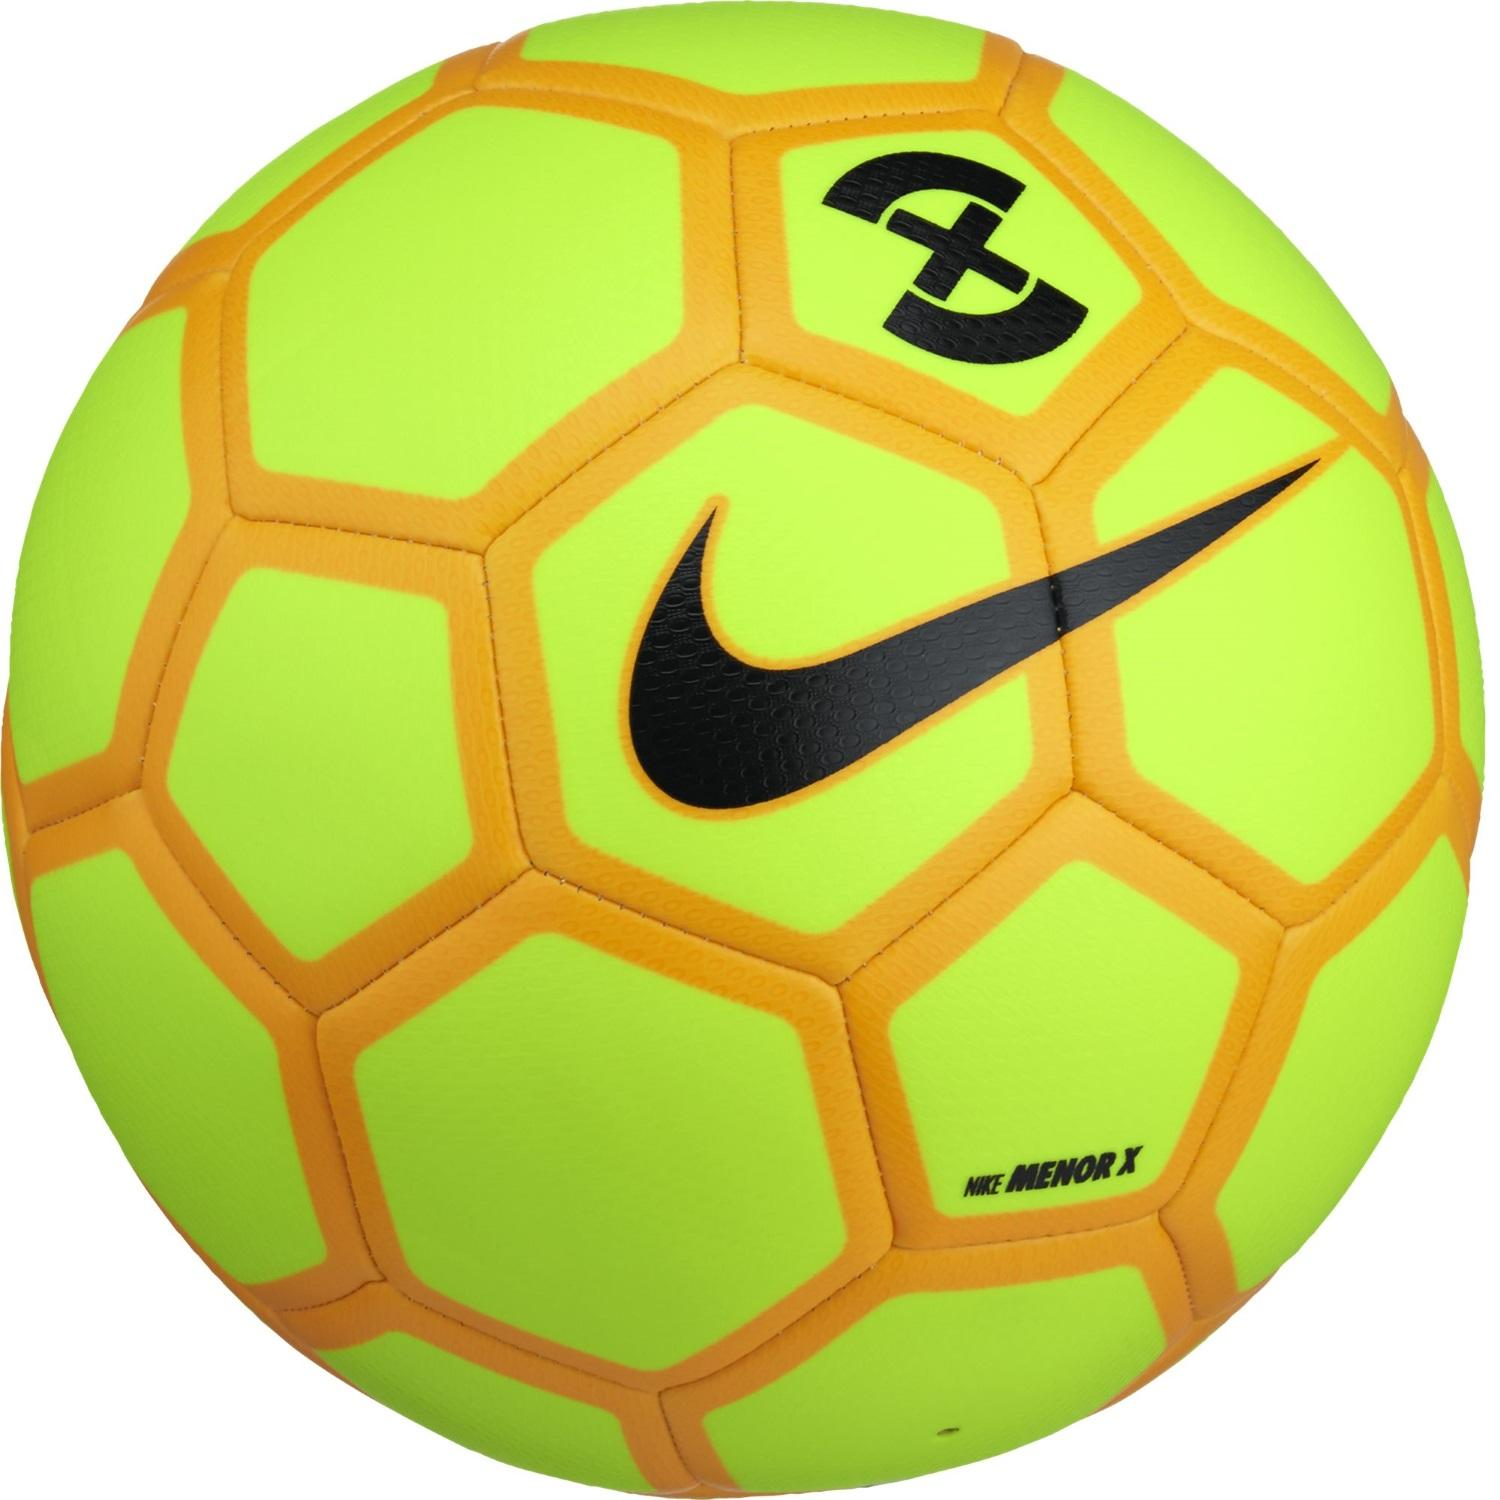 1500x1500 Soccer Balls Sportsmans Warehouse